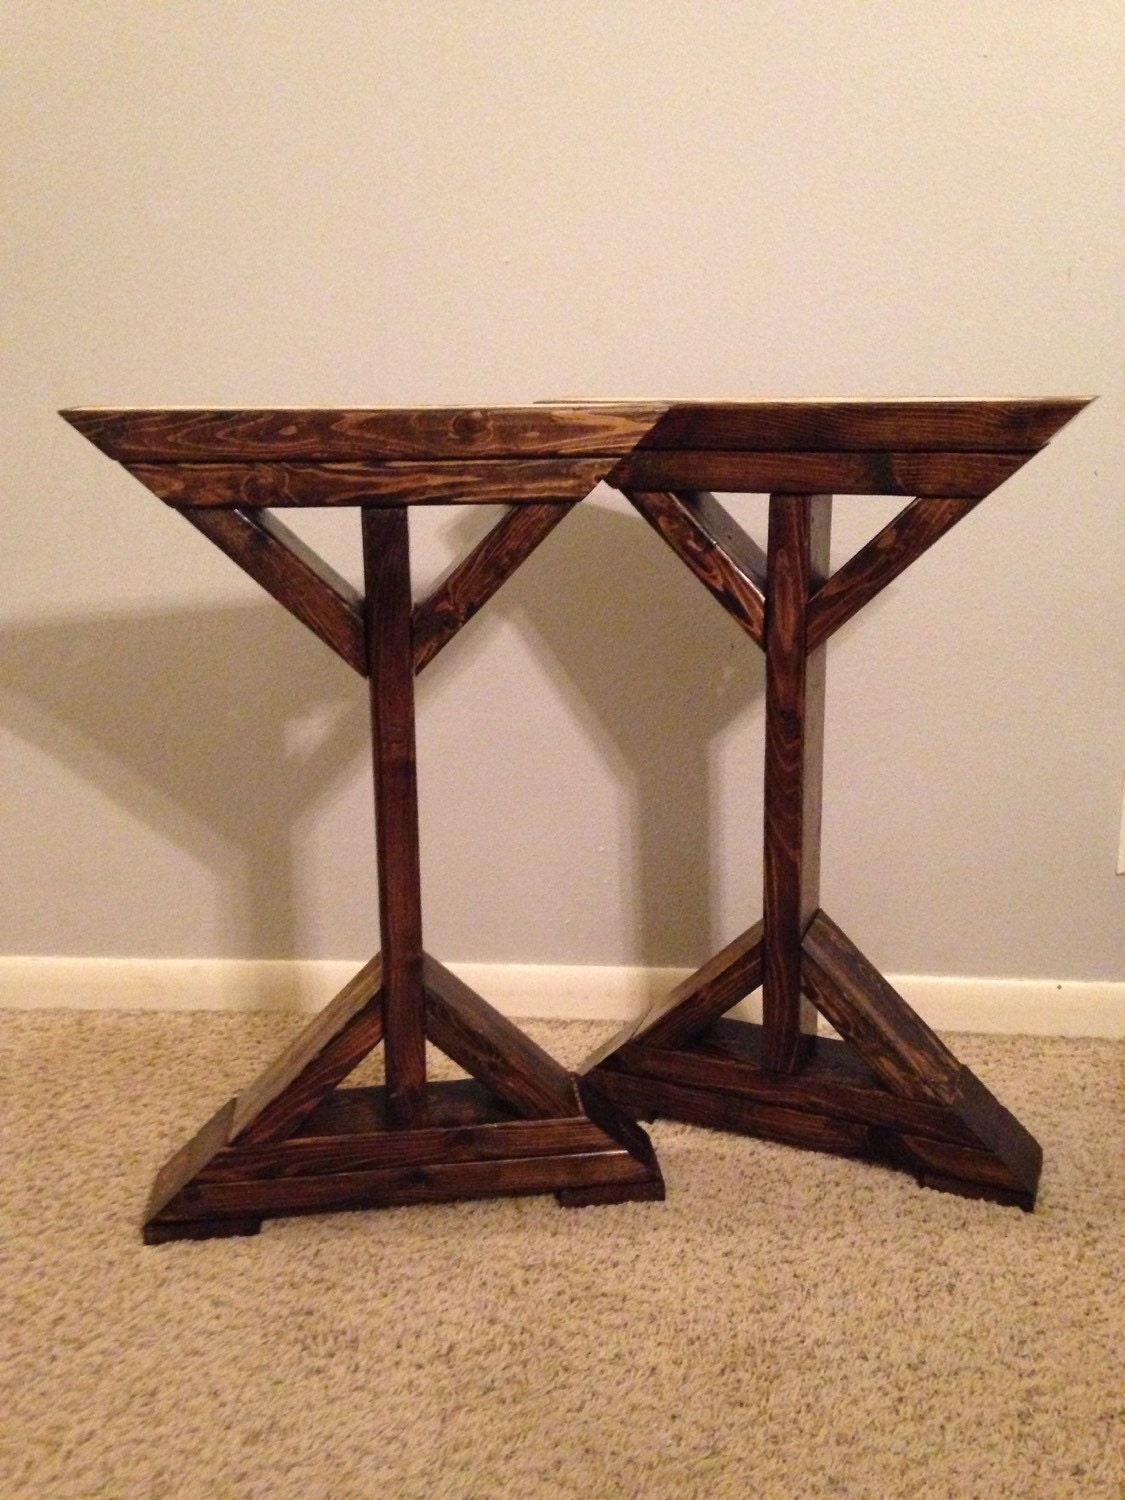 Farmhouse x frame table legs wood table legs by for Farmhouse table plans with x legs